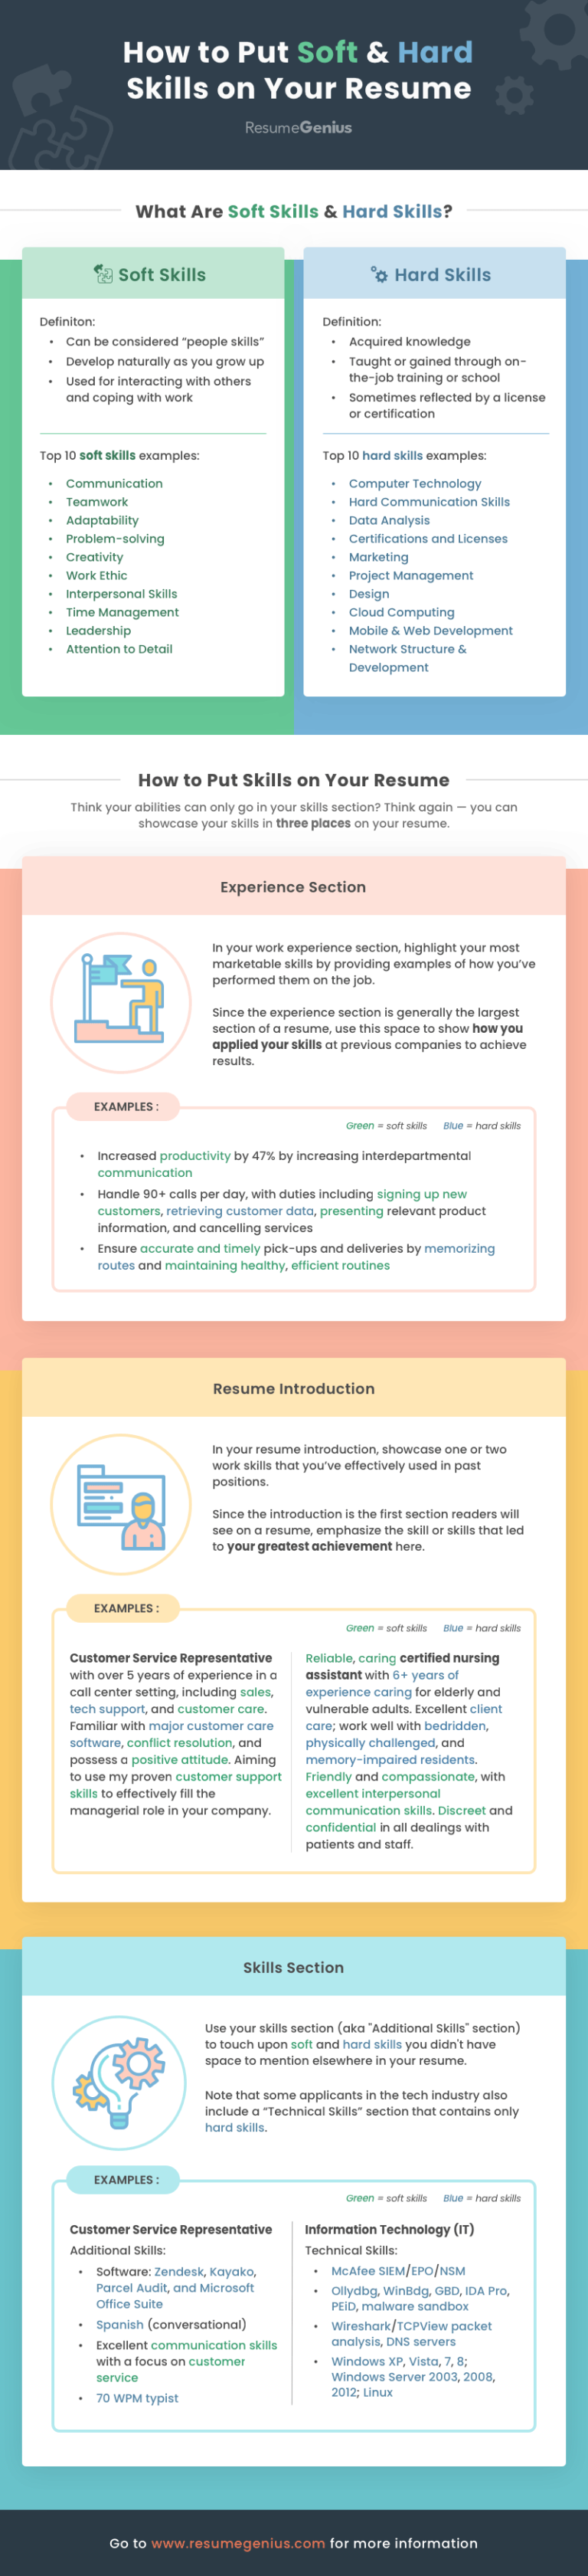 How To List Soft And Hard Skills On Your Resume Infographic Resume Skills List Resume Skills Section List Of Skills